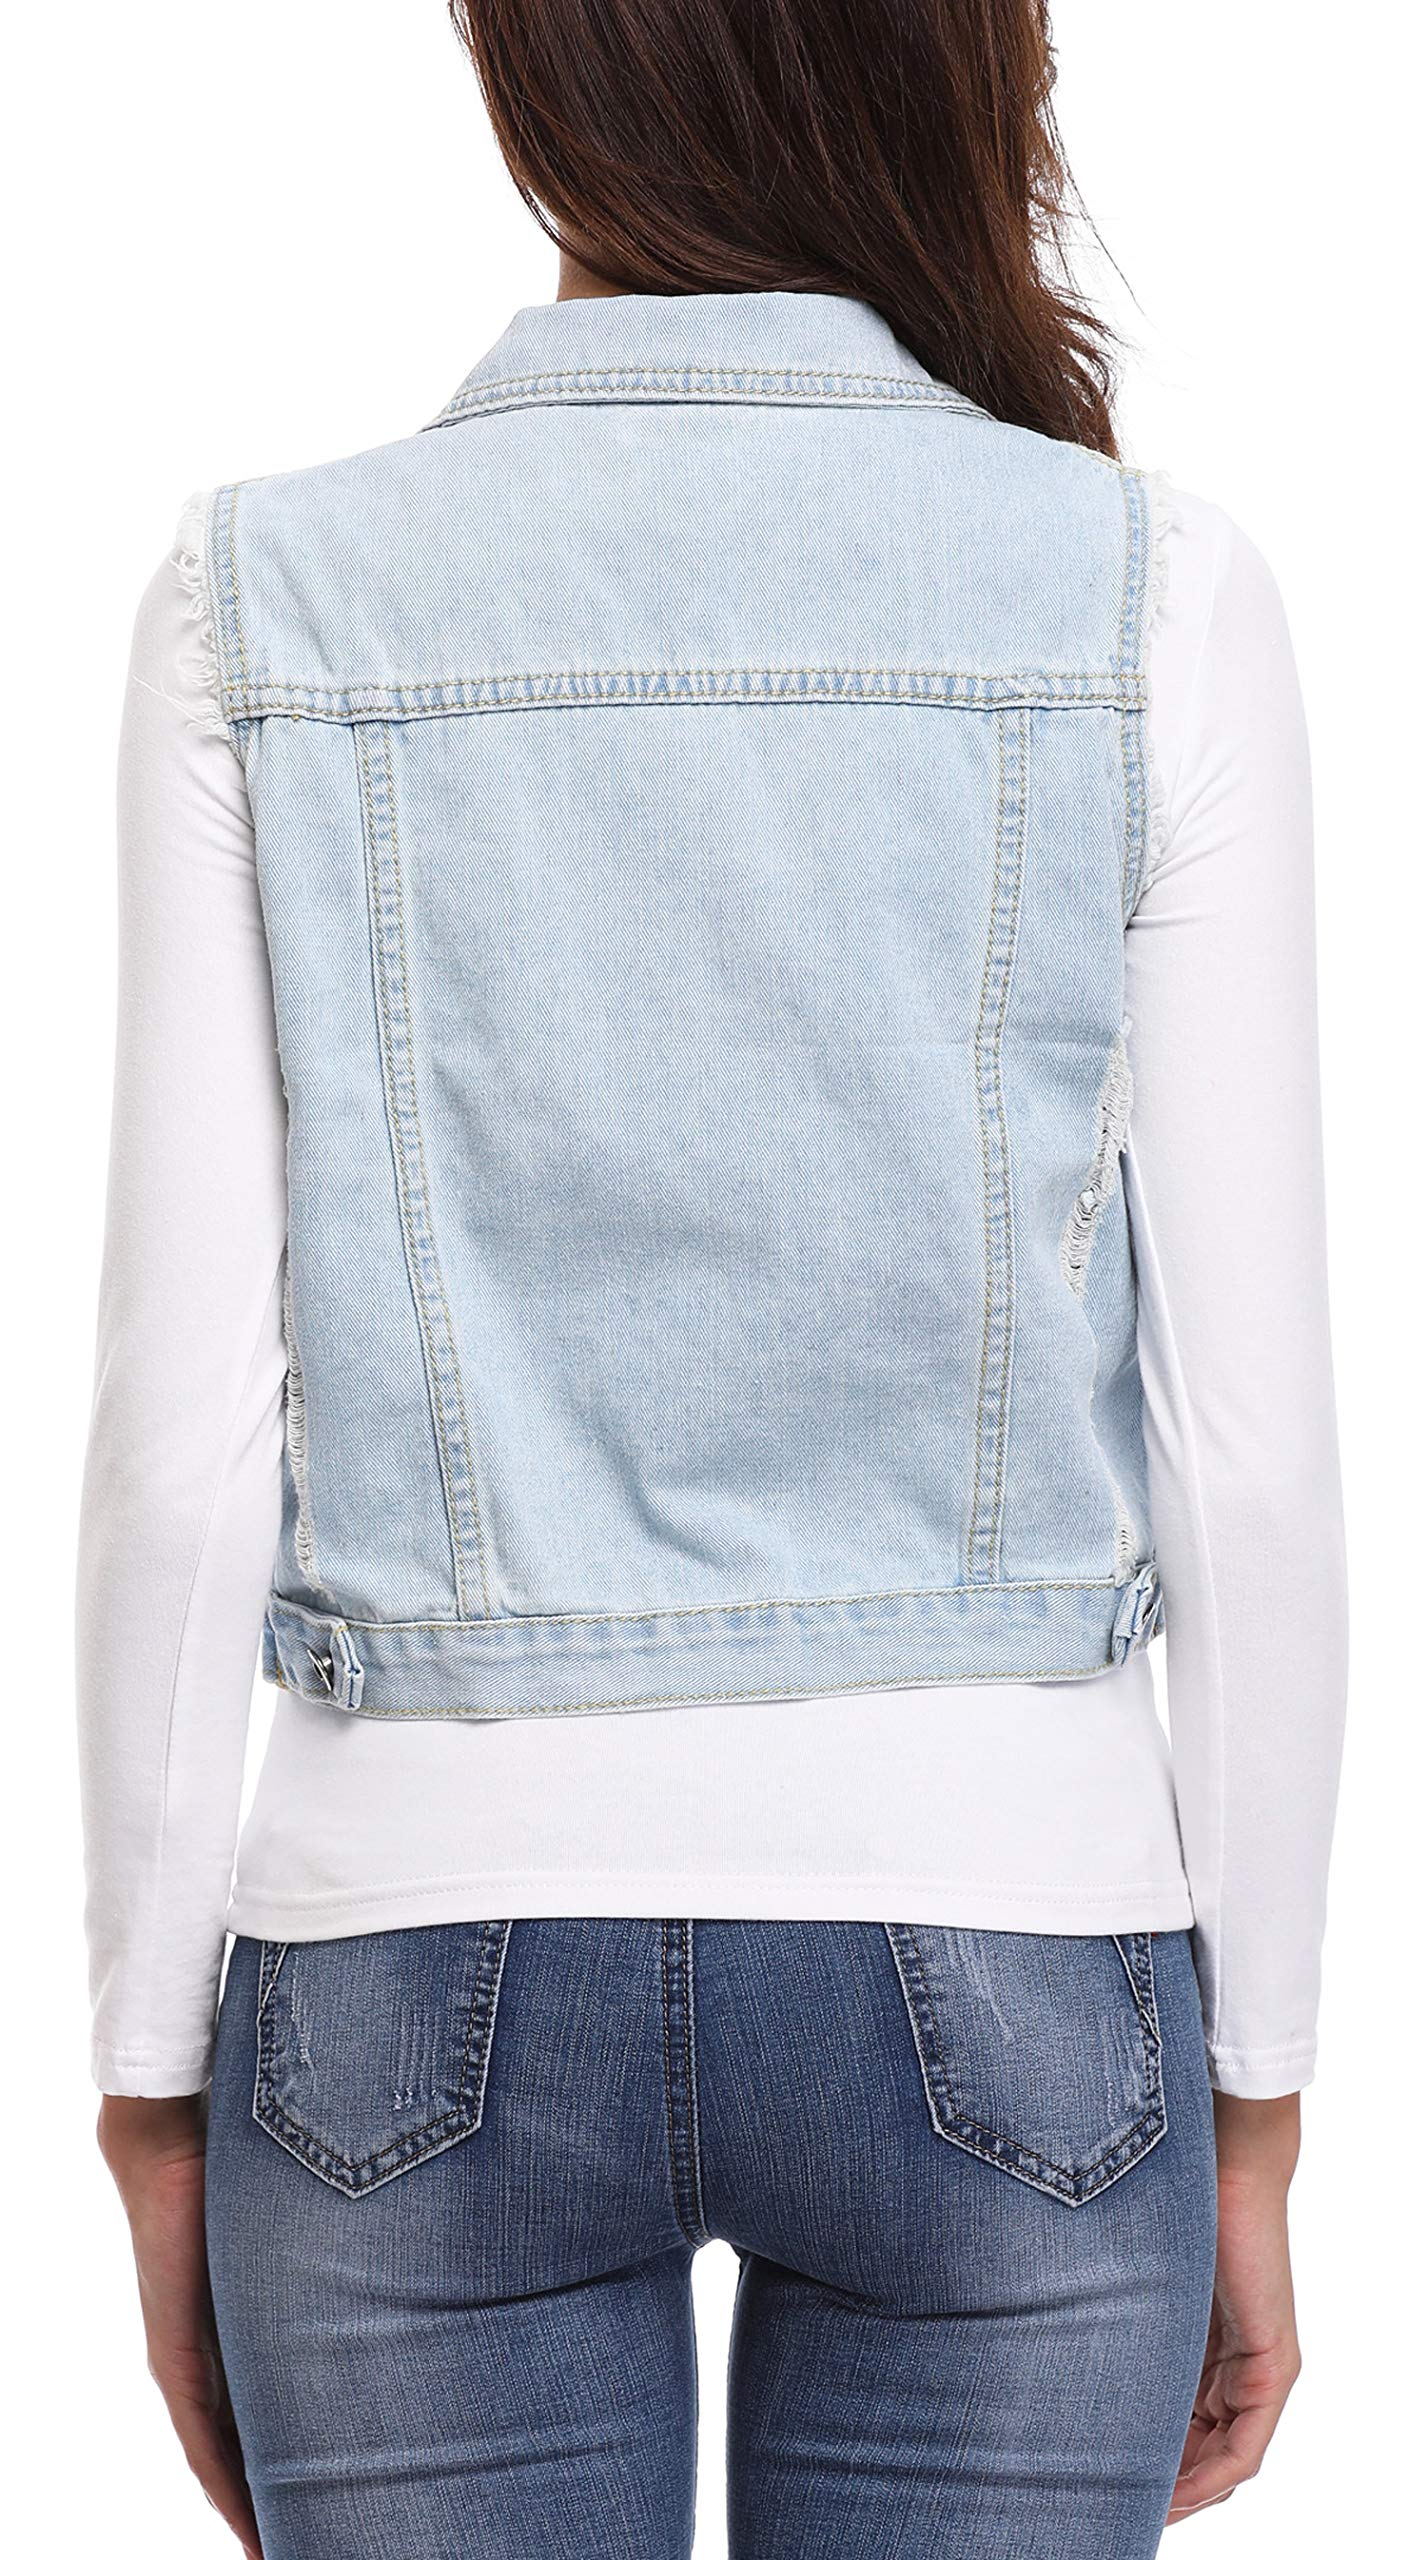 MISS MOLY Women's Sleeveless Denim Jacket Vest Turn Down Collar Buttoned Frayed Washed w 2 Chest Flap Pockets Light Blue XL by MISS MOLY (Image #7)